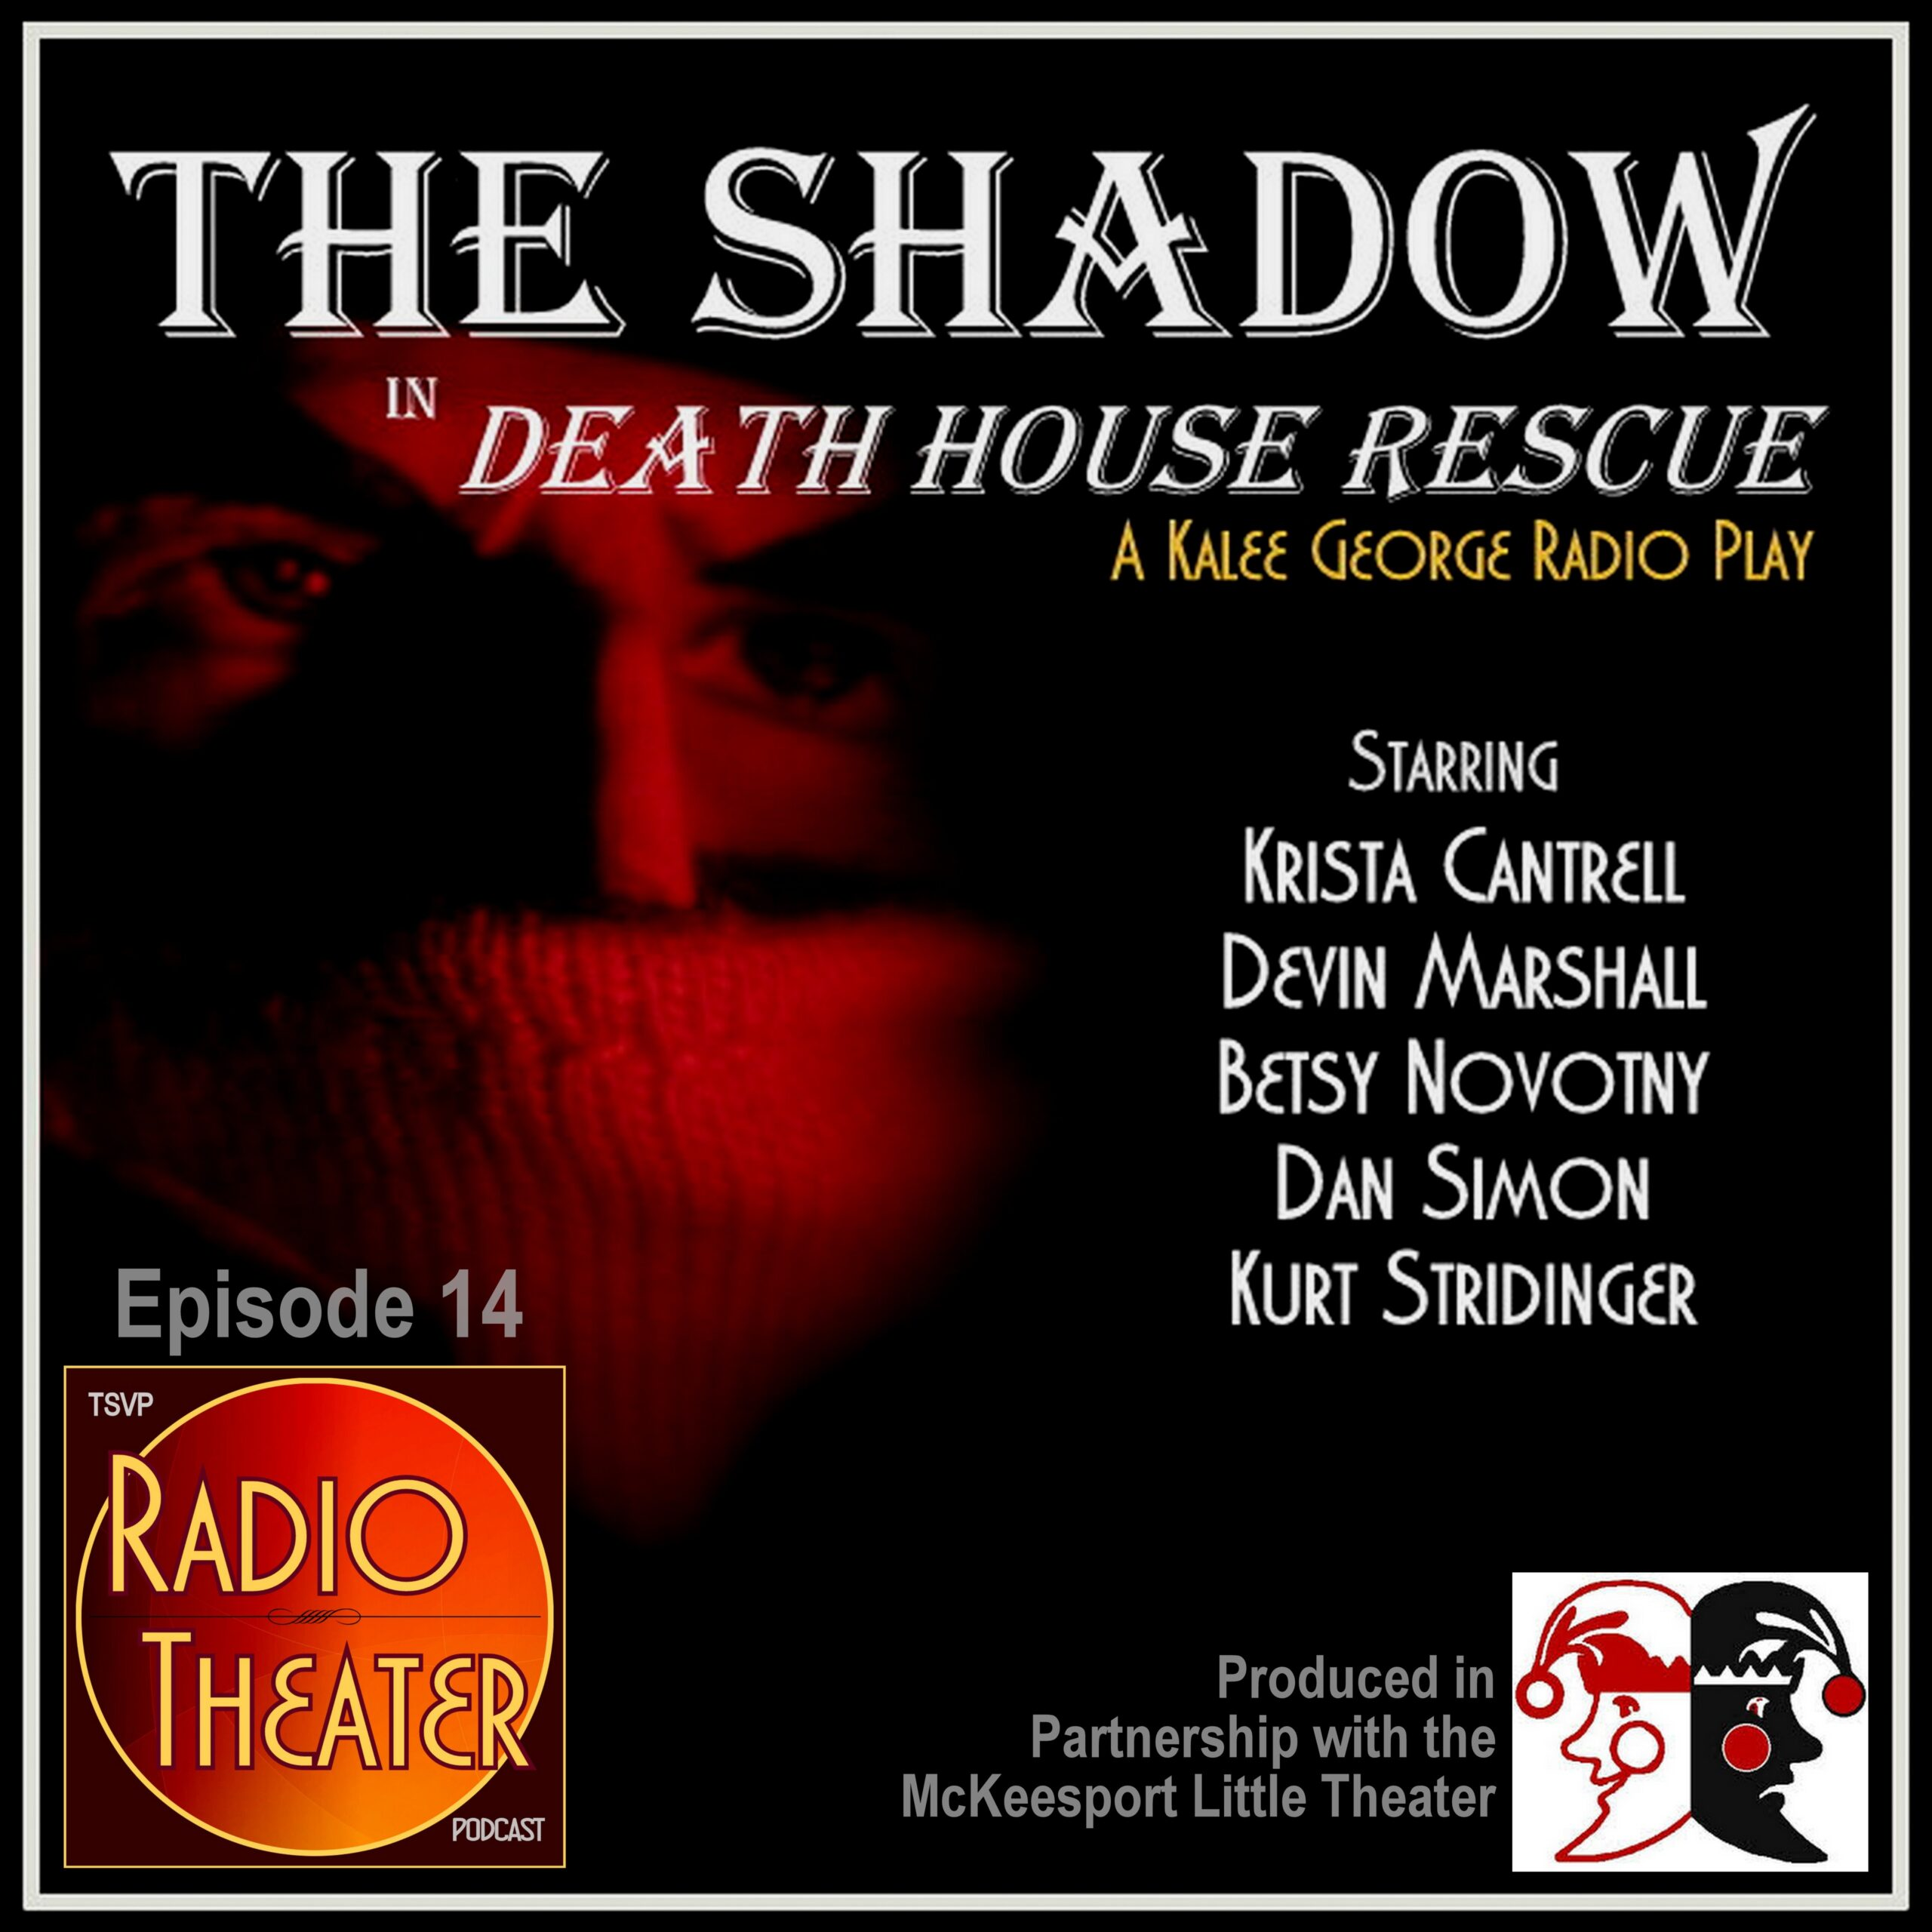 RTP14 - THE SHADOW - DEATH HOUSE RESCUE